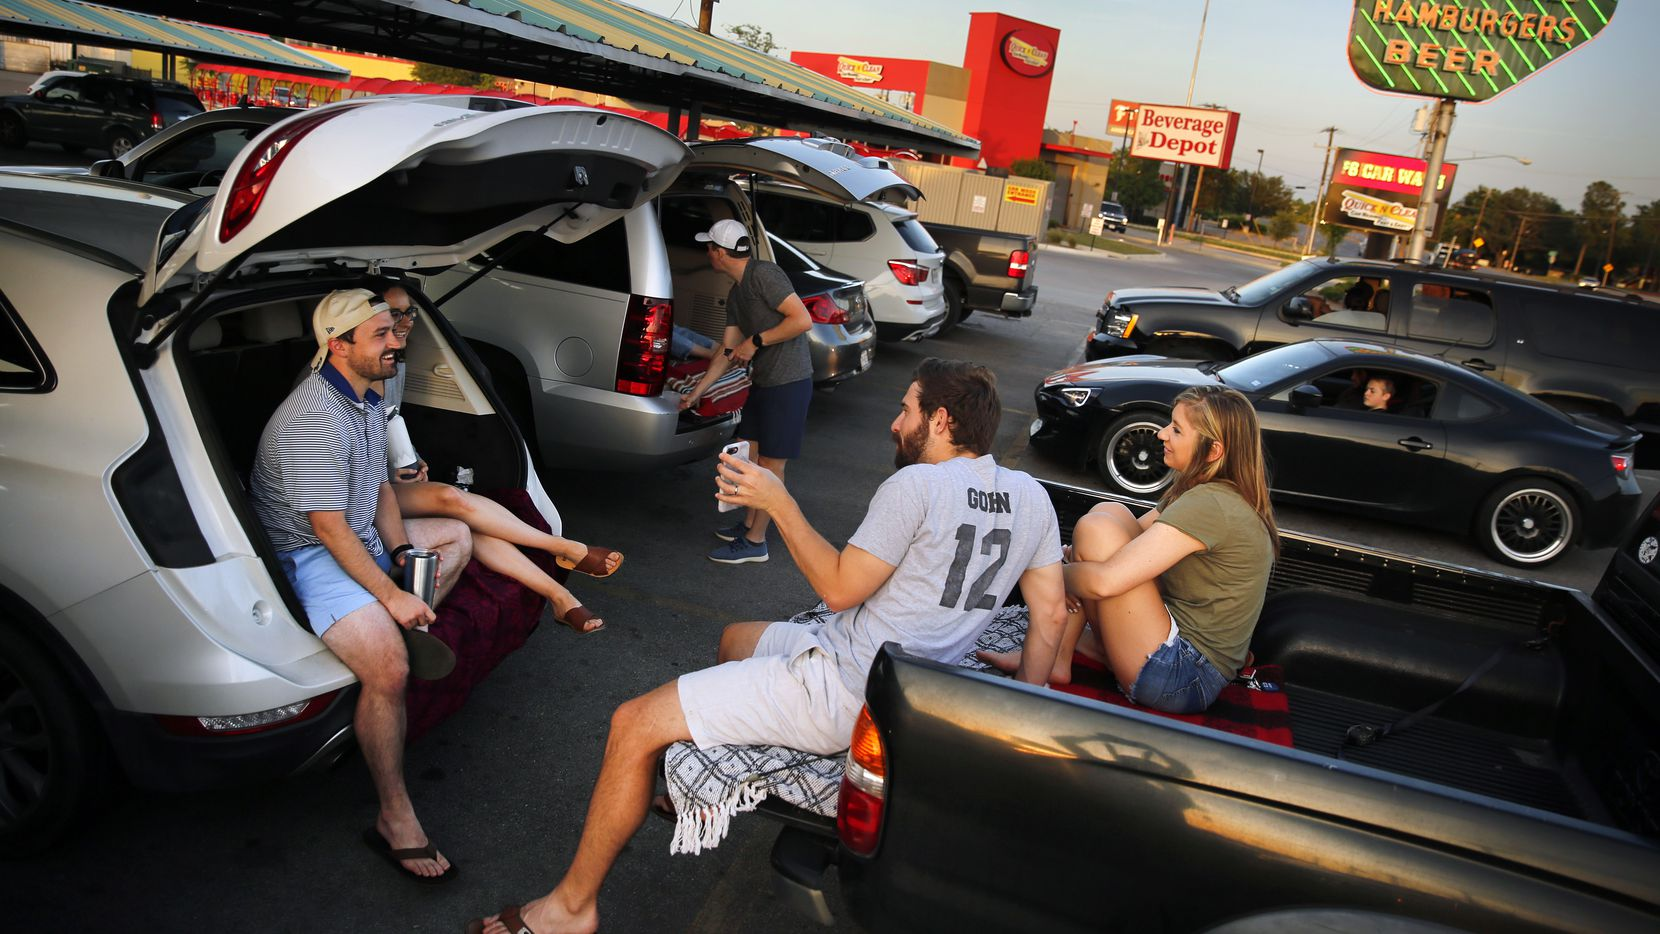 Japhen Lott and wife Miranda (left) tailgated with friends Jon Gohn and wife Lauren at Keller's Drive-In on Northwest Highway in Dallas on May 14, 2020. Researchers at UTHealth hope Texans will use a mobile app to help track symptoms as the state's economy reopens.